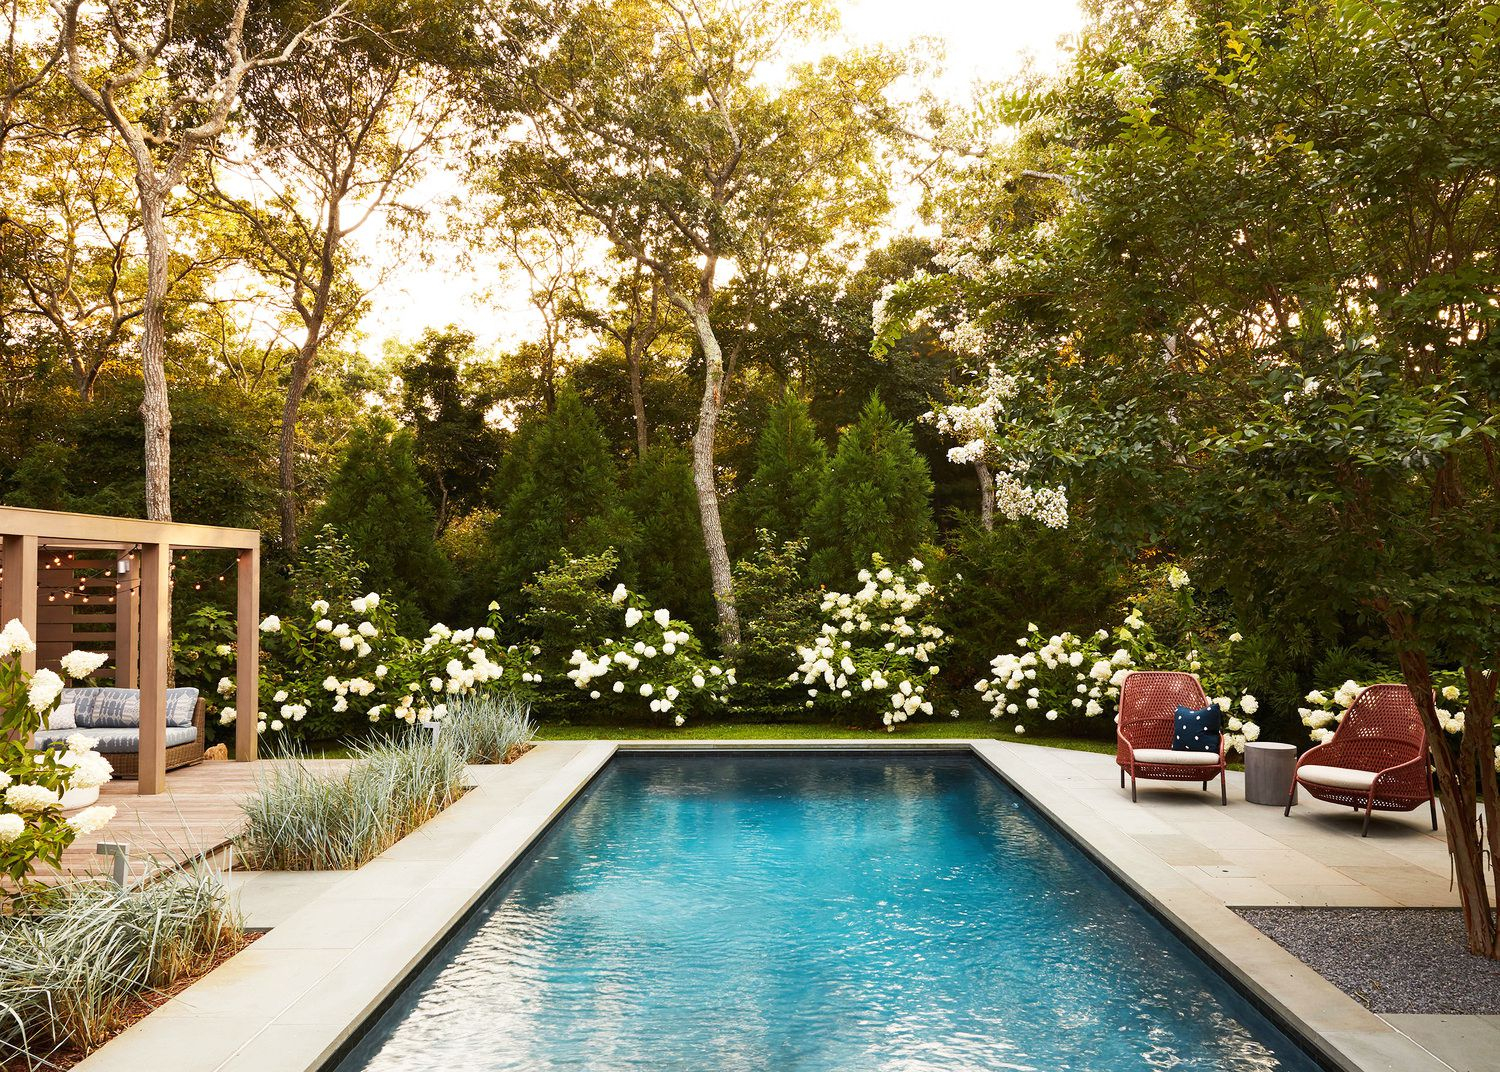 37 Breathtaking Backyard Ideas Outdoor Space Design Inspiration within 10 Genius Concepts of How to Improve Colorful Backyard Ideas